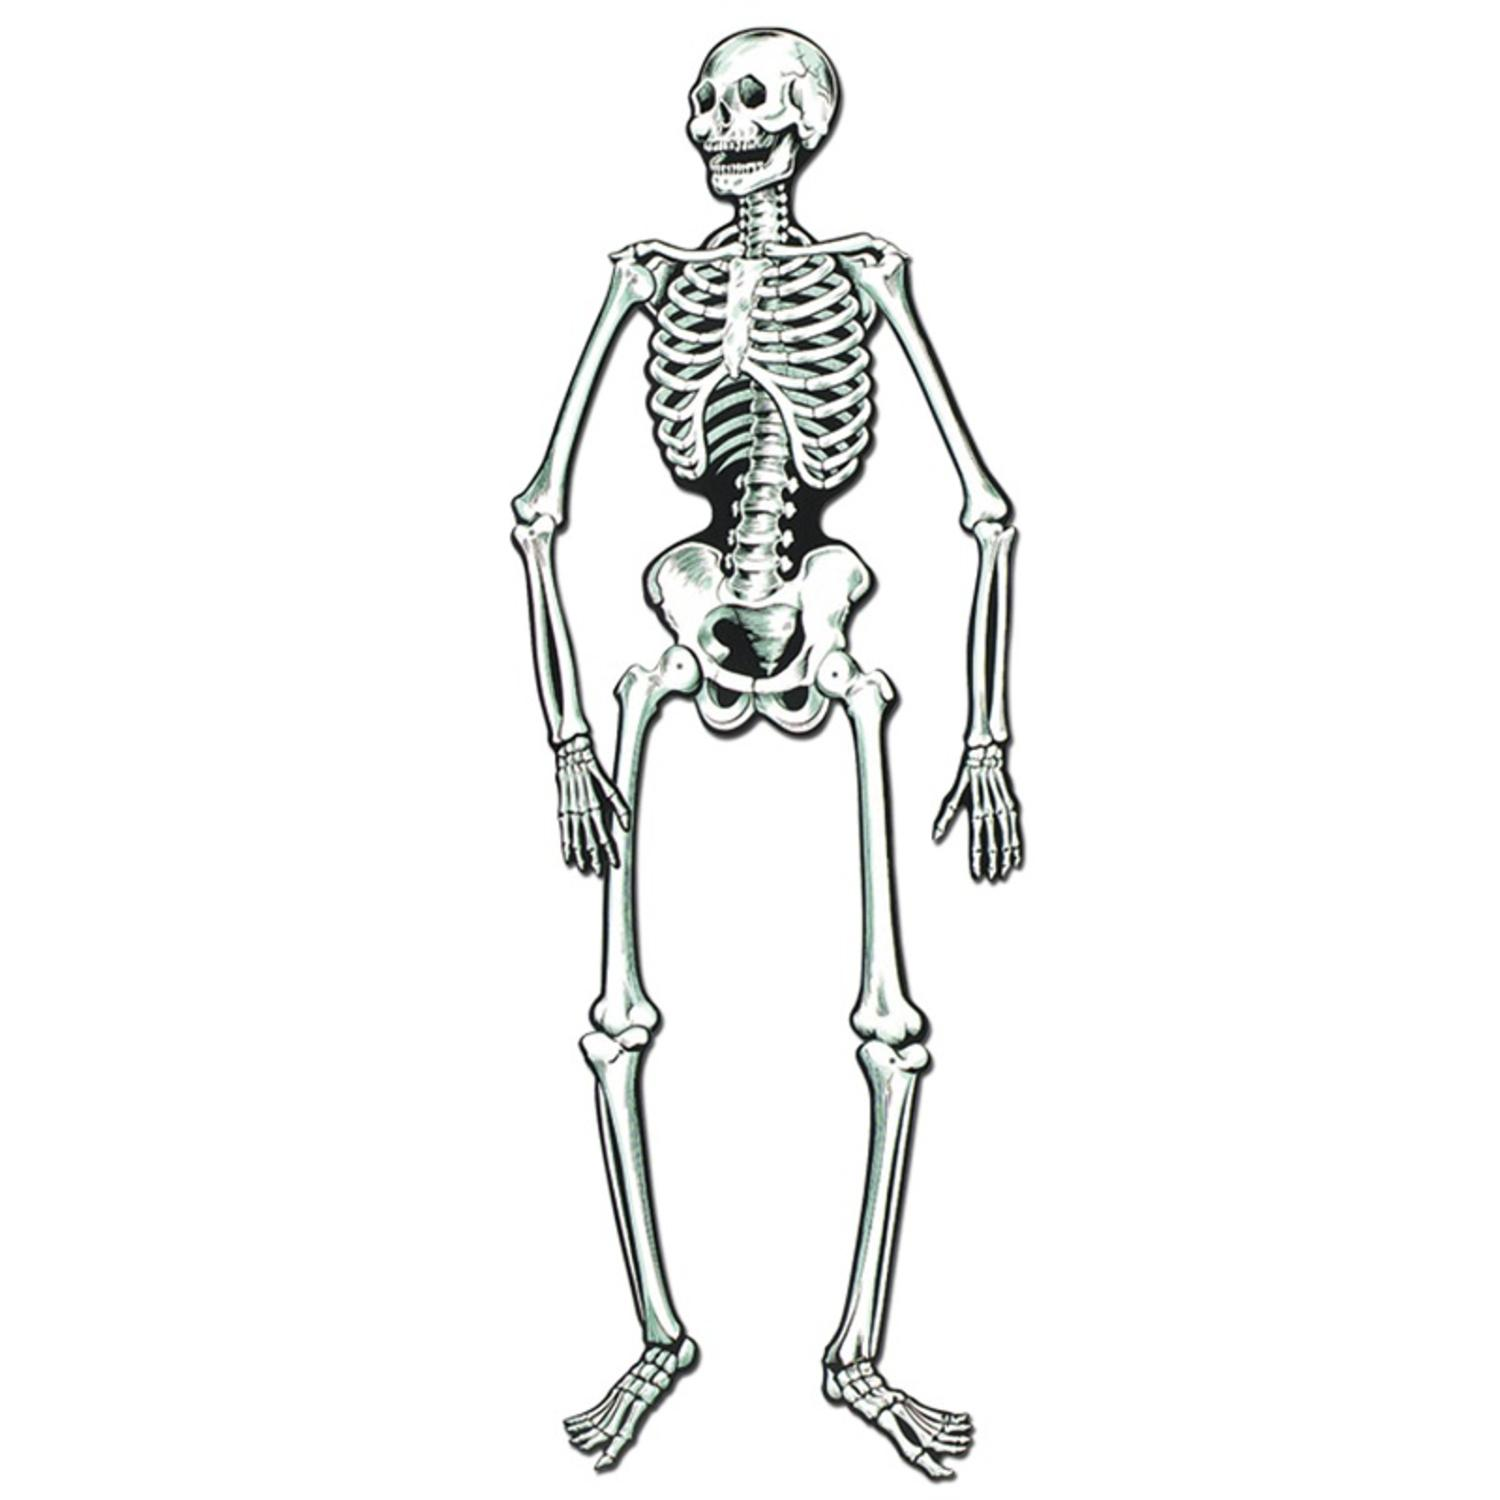 Club Pack of 12 Spooky Jointed Jolly Skeleton Halloween Decorations 4.5'